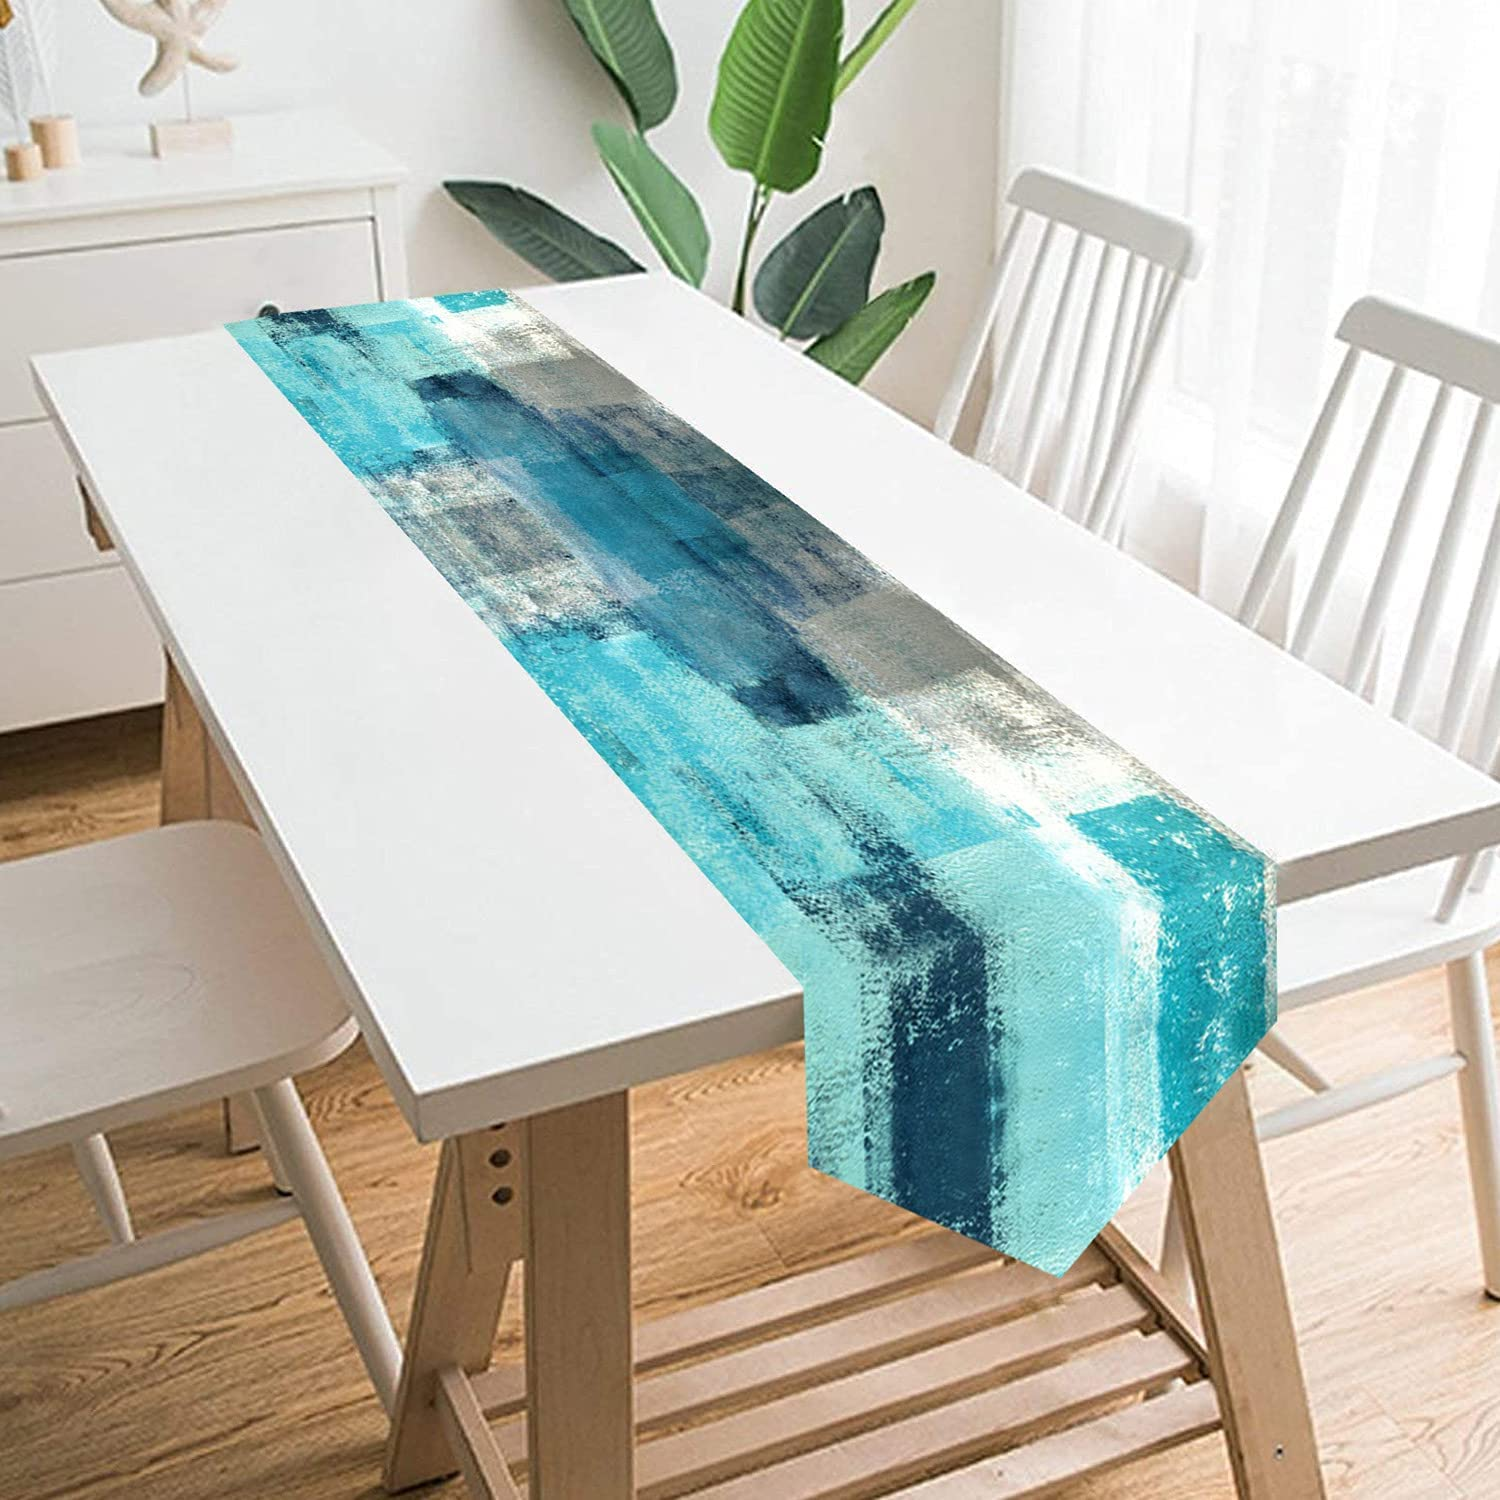 BrilliStar Teal Modern Art Table Runner Farmhouse Style Burlap Table Runner Turquoise and Grey Abstract Art Painting Table Runners for Farmhouse Kitchen, Dinner Holiday Parties Decor 13 X 70 Inch